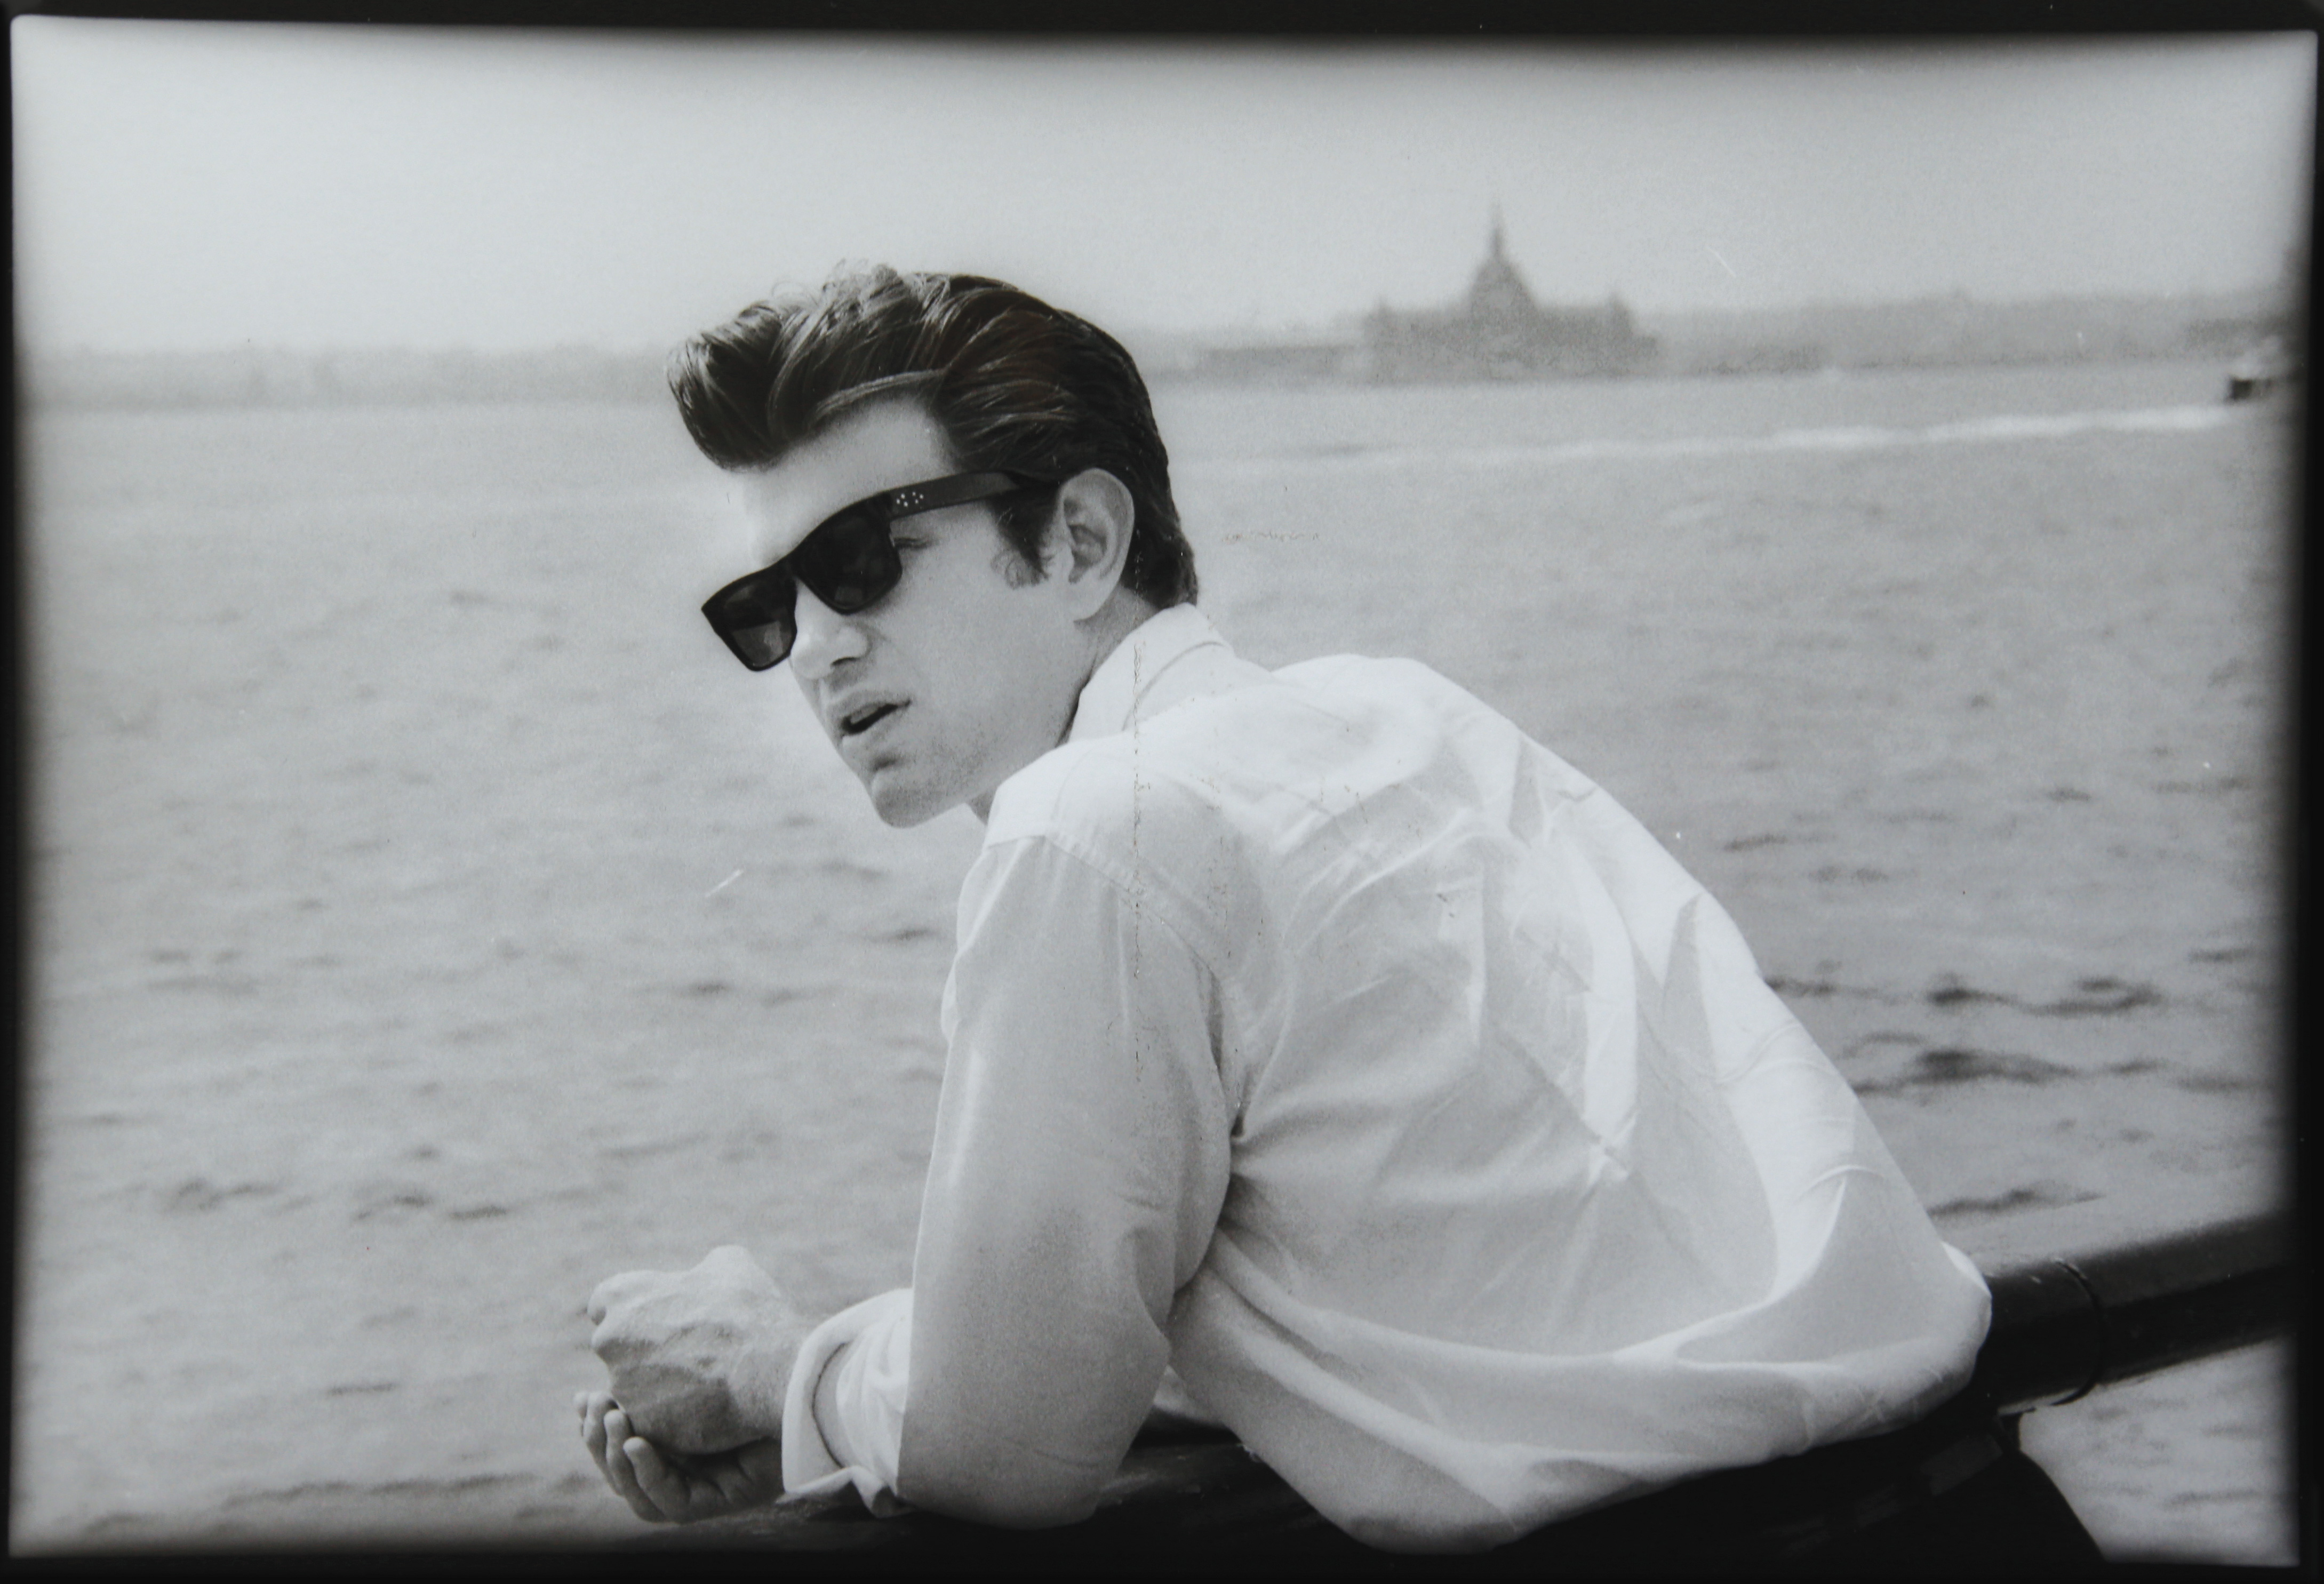 musician chris isaak leaning over a railing and looking out over the water at a wharf in New York